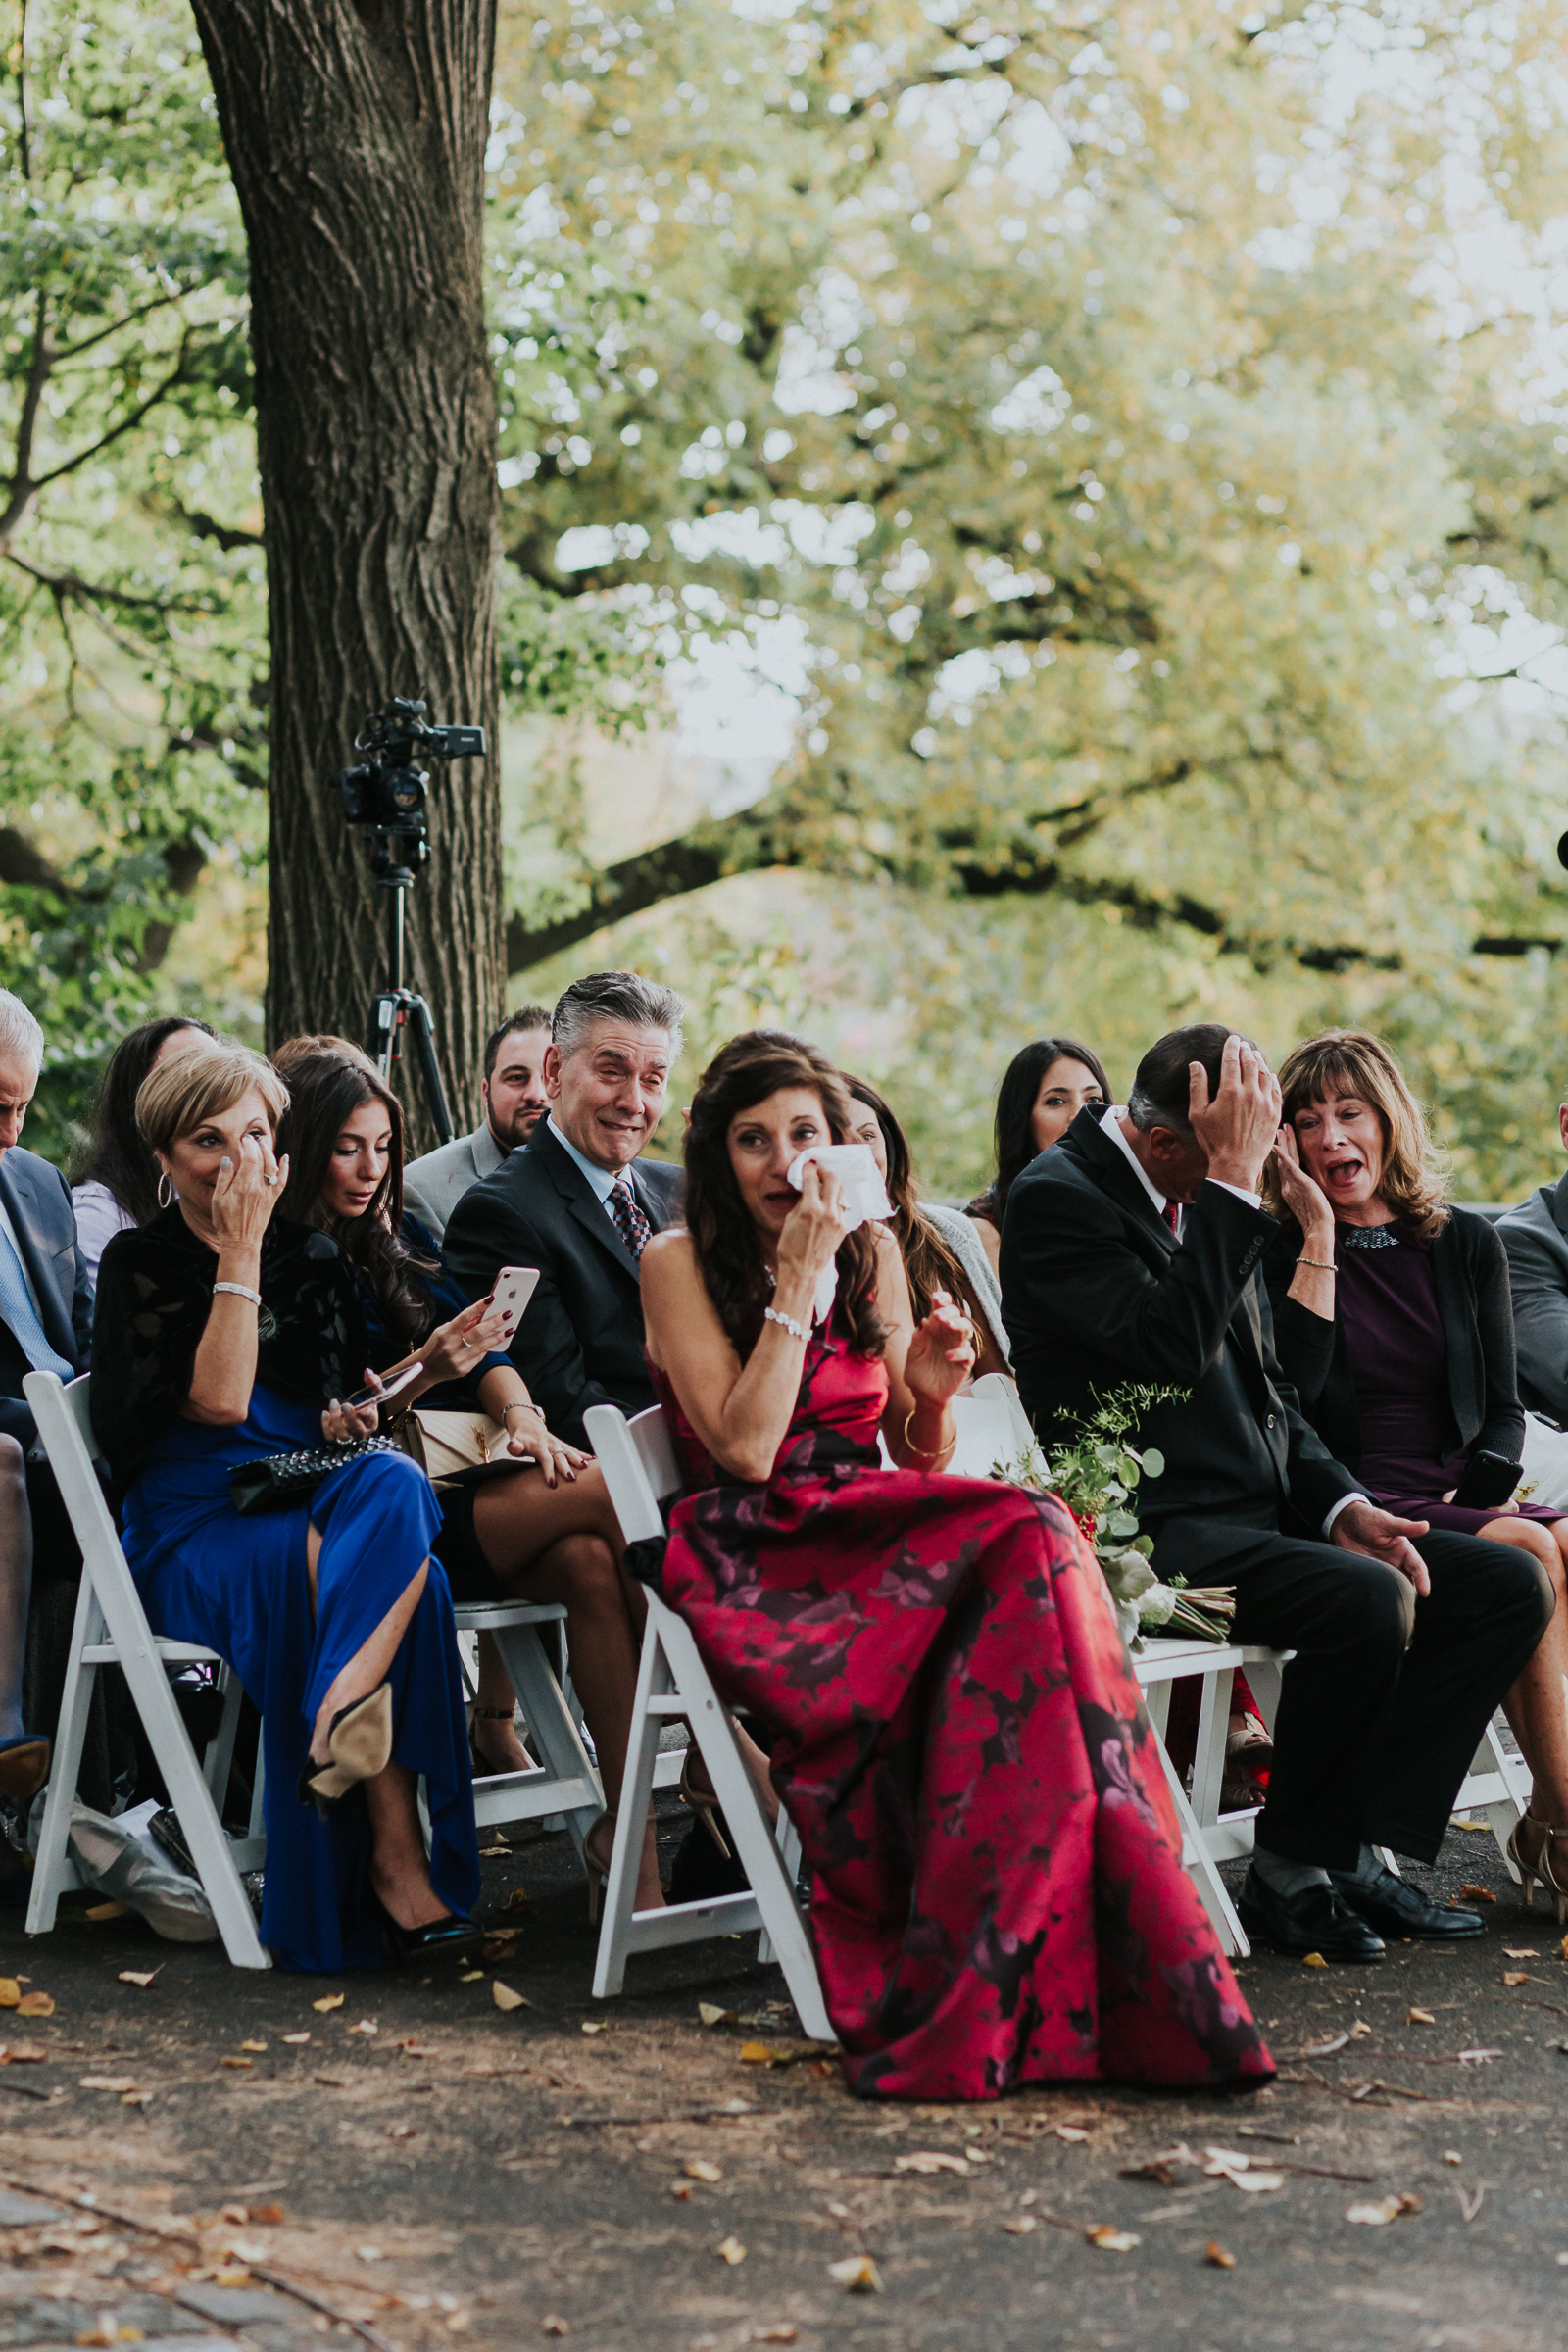 New-Leaf-Cafe-Fort-Tryon-Park-New-York-Documentary-Wedding-Photographer-54.jpg